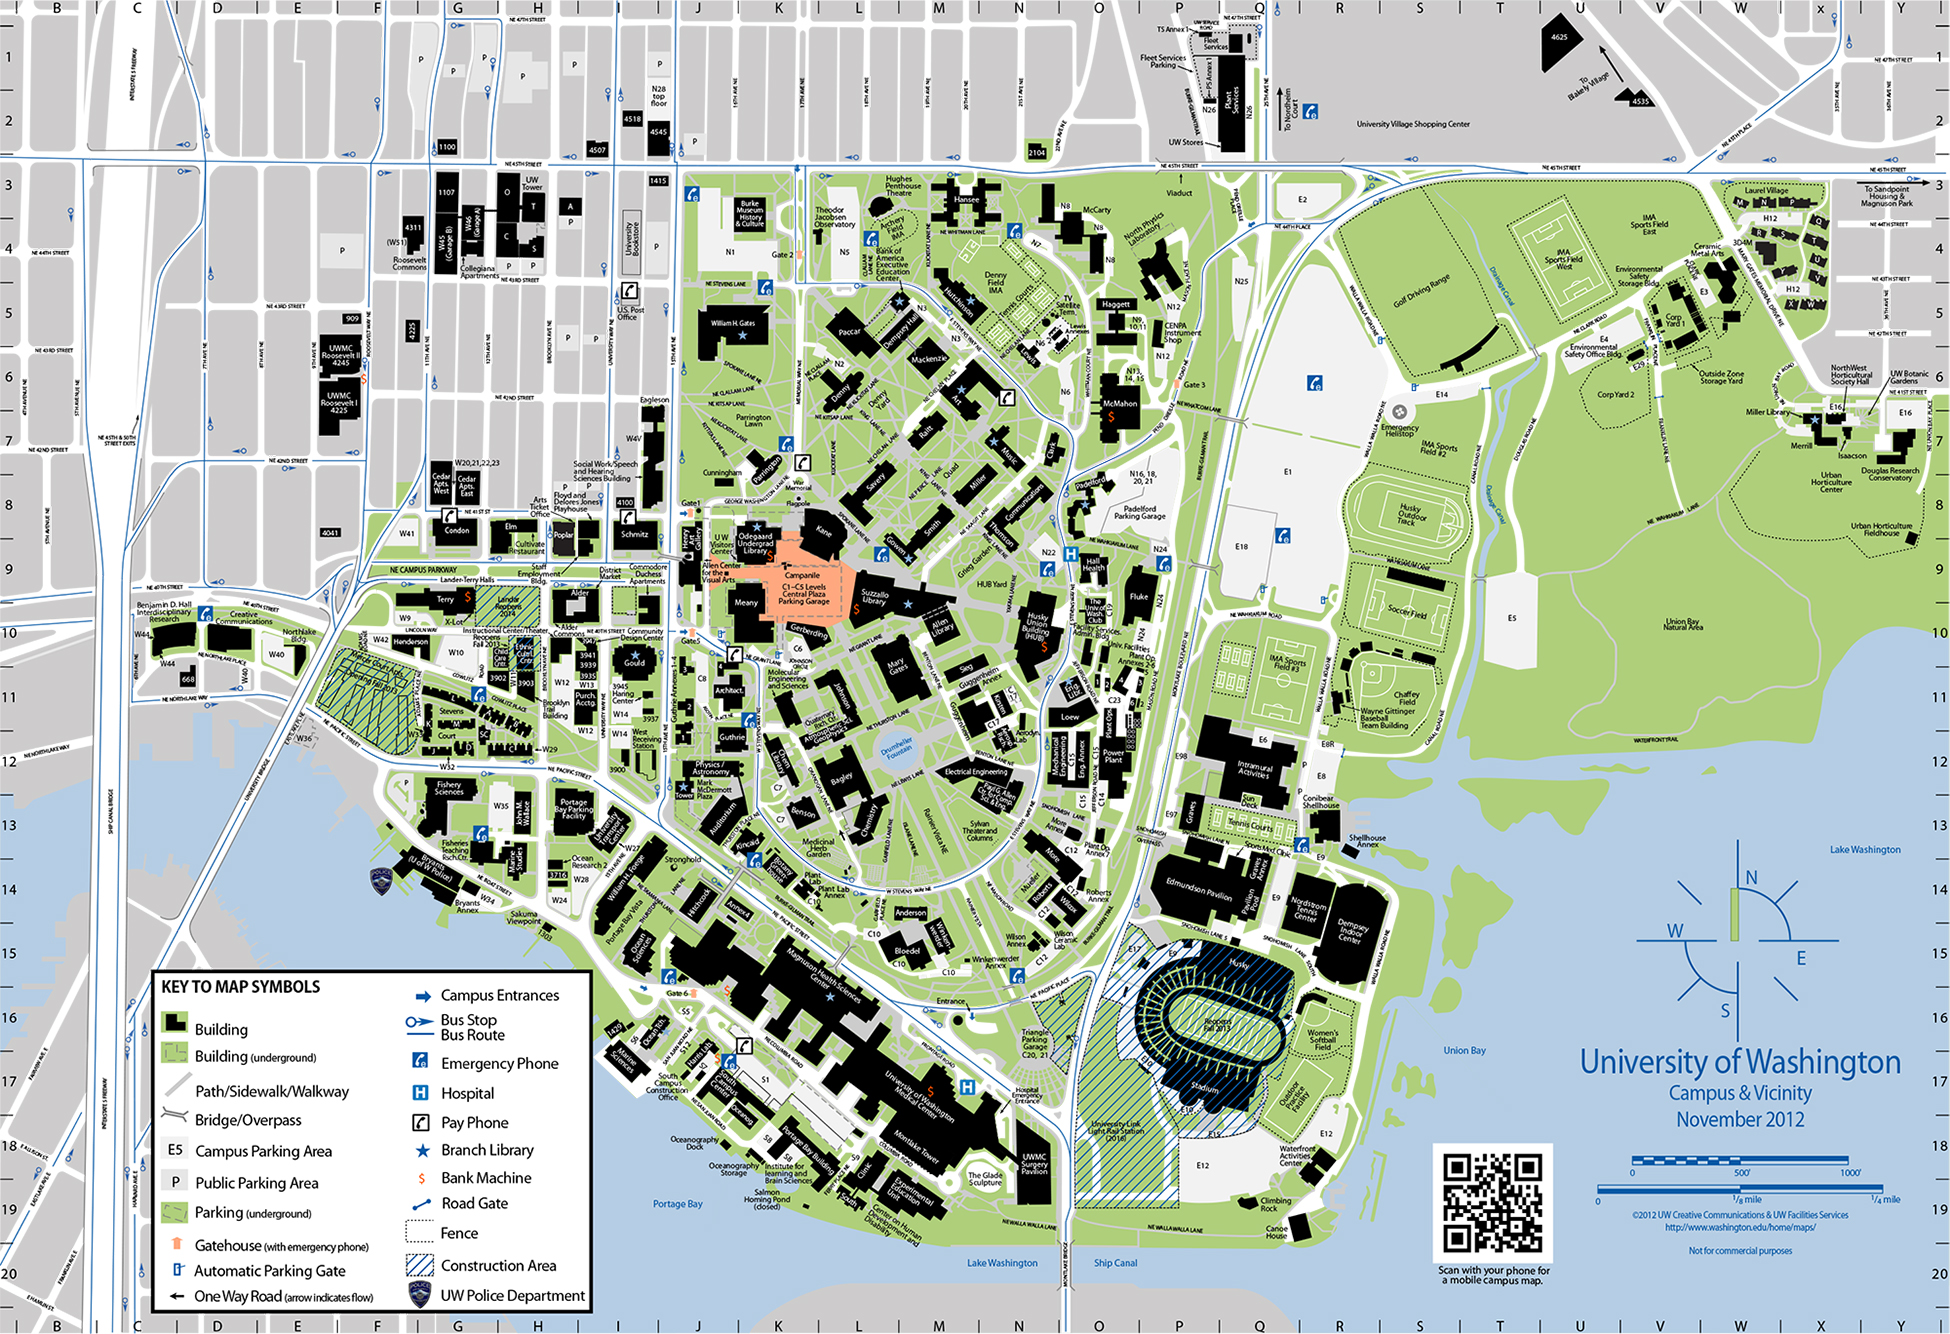 Directions and Parking | OMA&D Welcome Daze